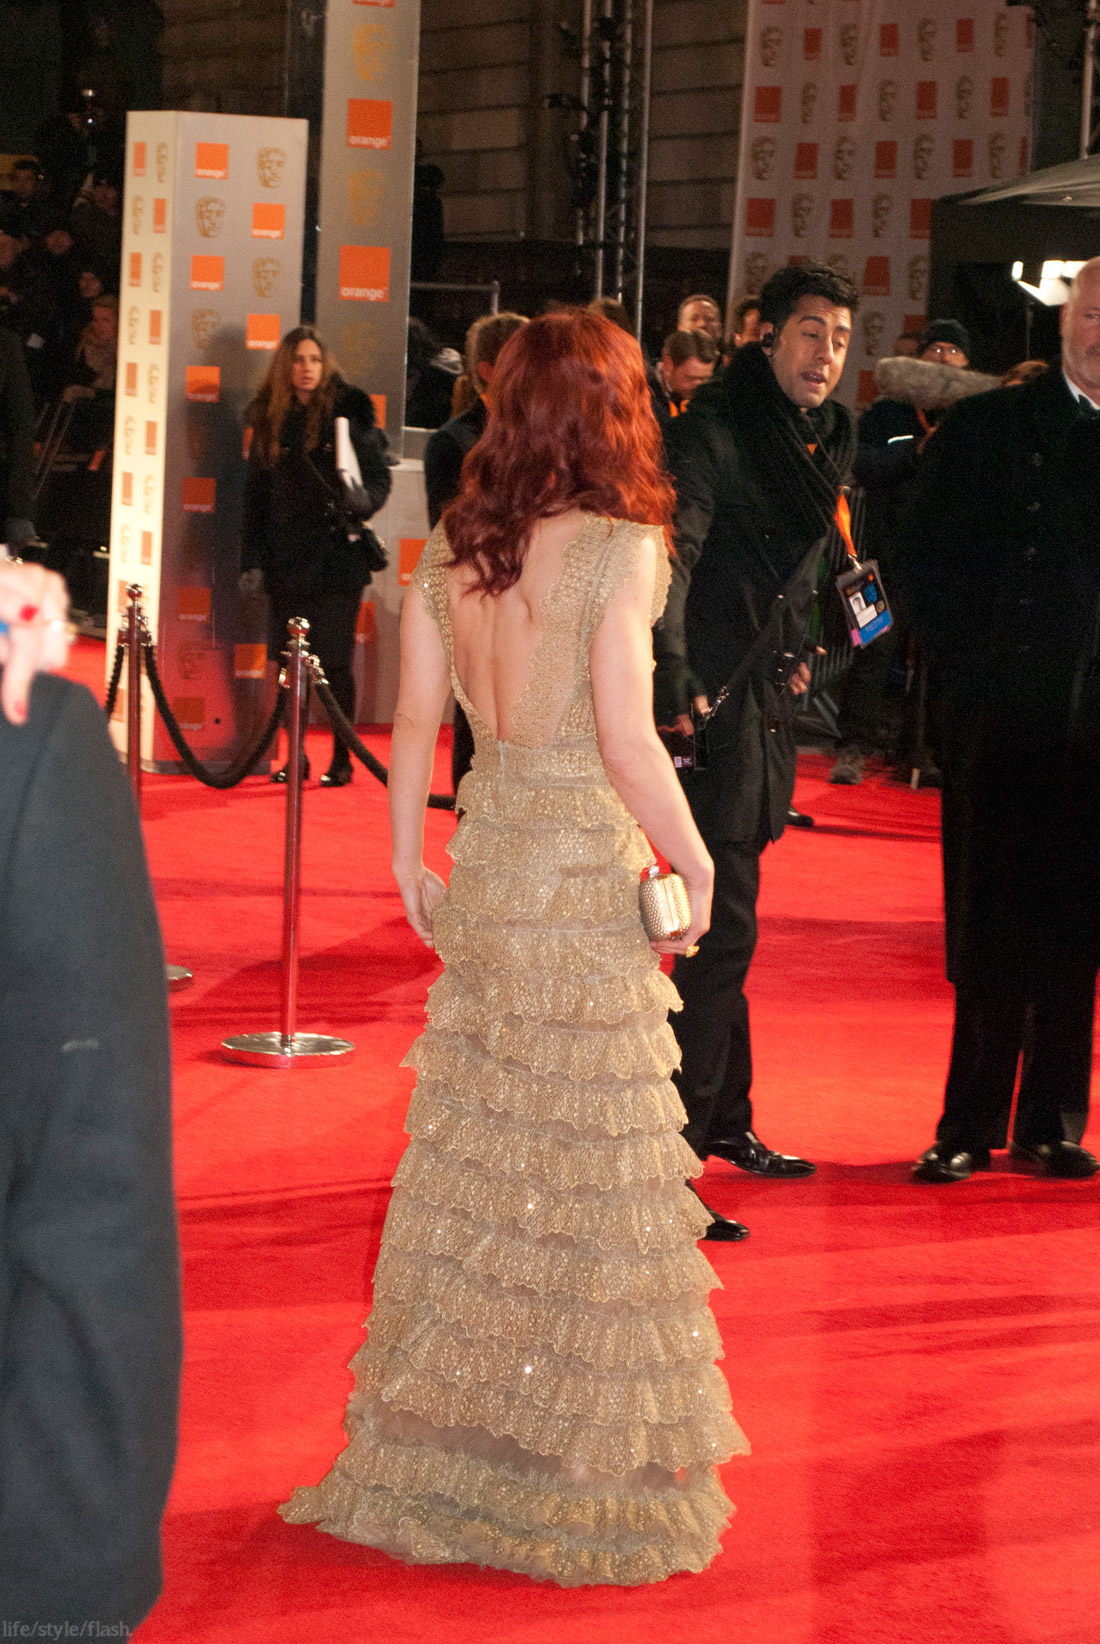 BAFTA awards 2012 - Emilia Fox on the red carpet